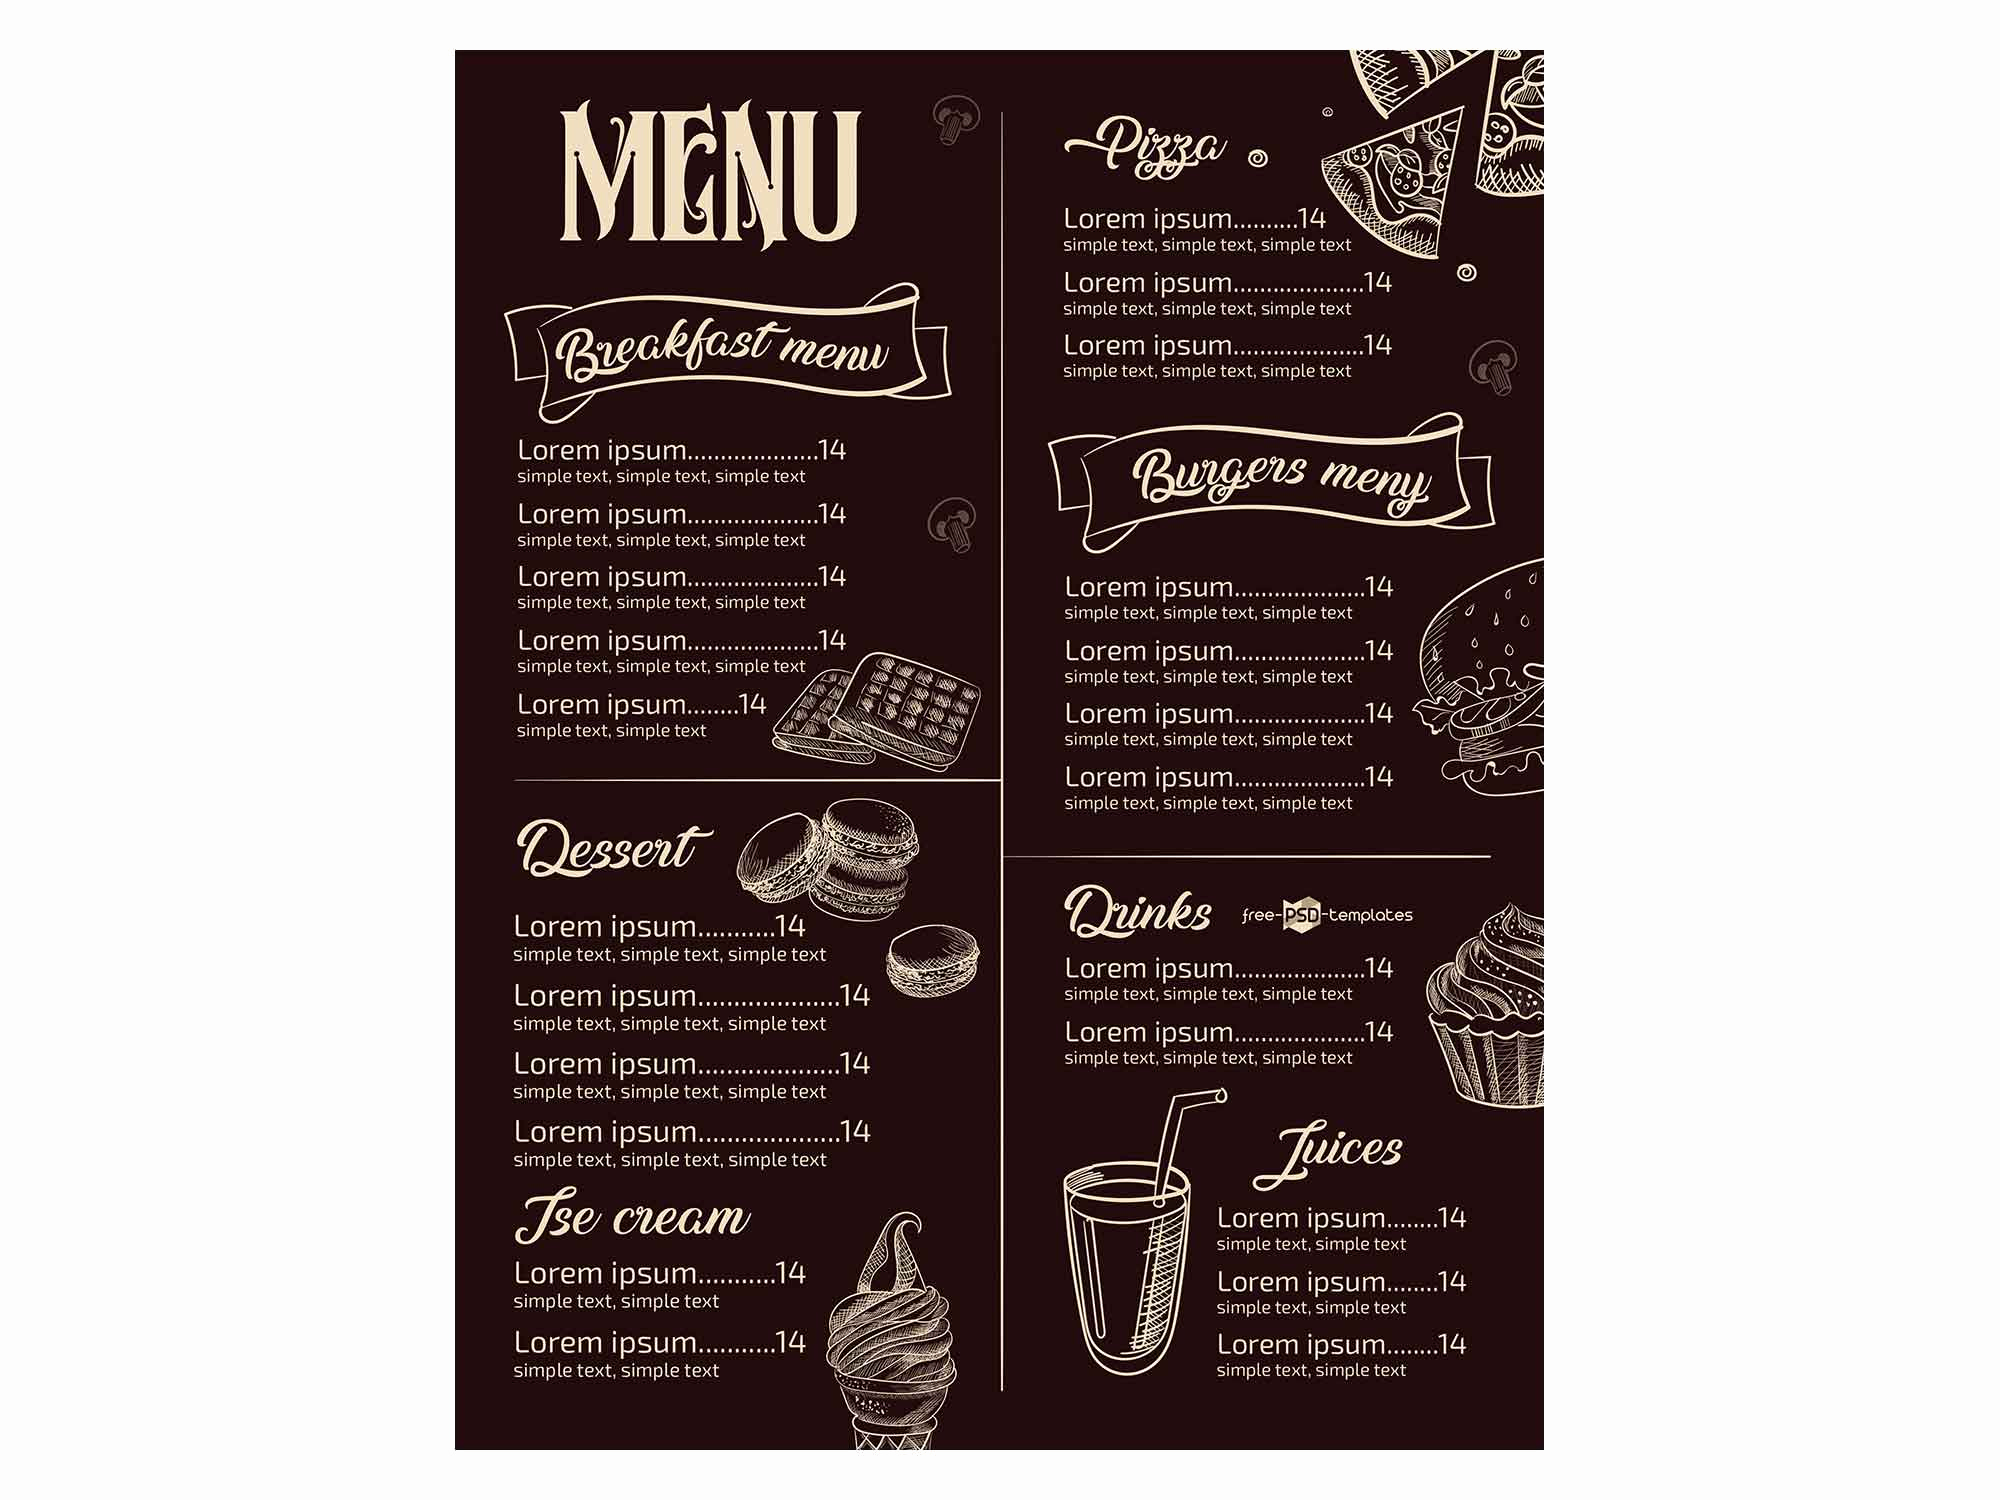 Restaurant Menu Template Psd New Free Restaurant Menu Template Psd